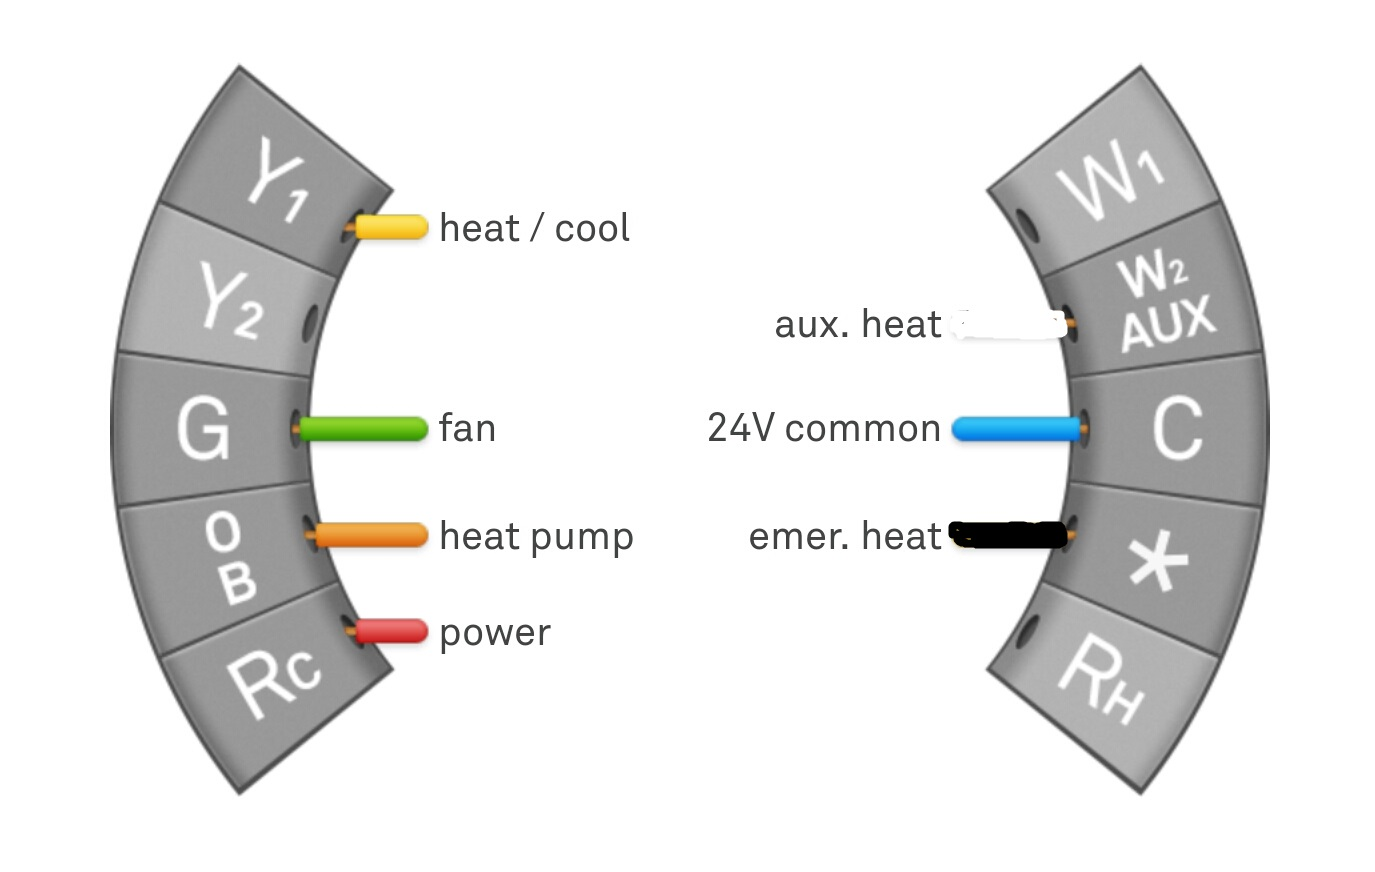 Wiring Heat Pump Florida Diagram Nest Thermostat And Pumps Aux Chris Tierney 776x492